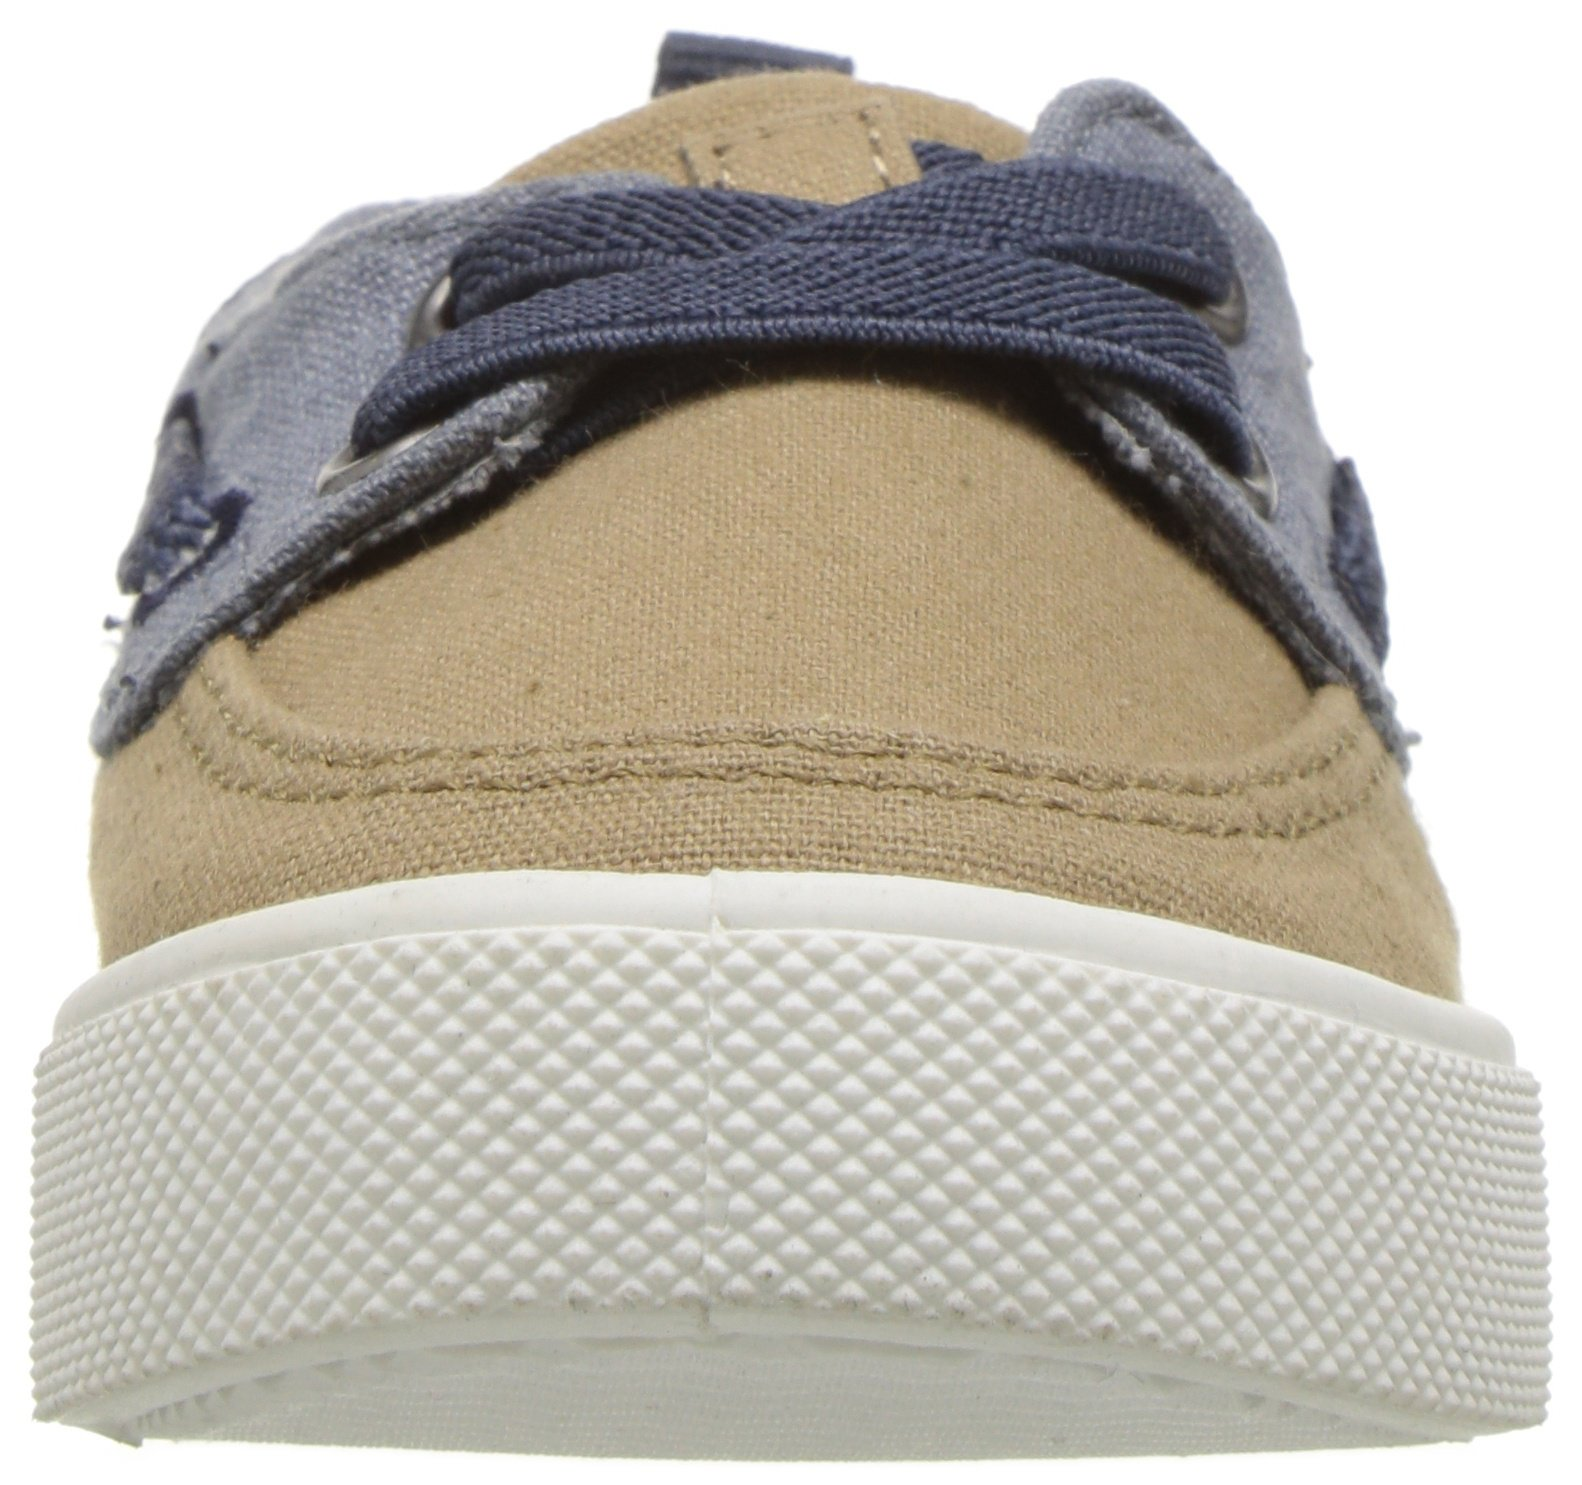 OshKosh B'Gosh Albie Boy's Boat Shoe, Khaki, 12 M US Little Kid by OshKosh B'Gosh (Image #4)